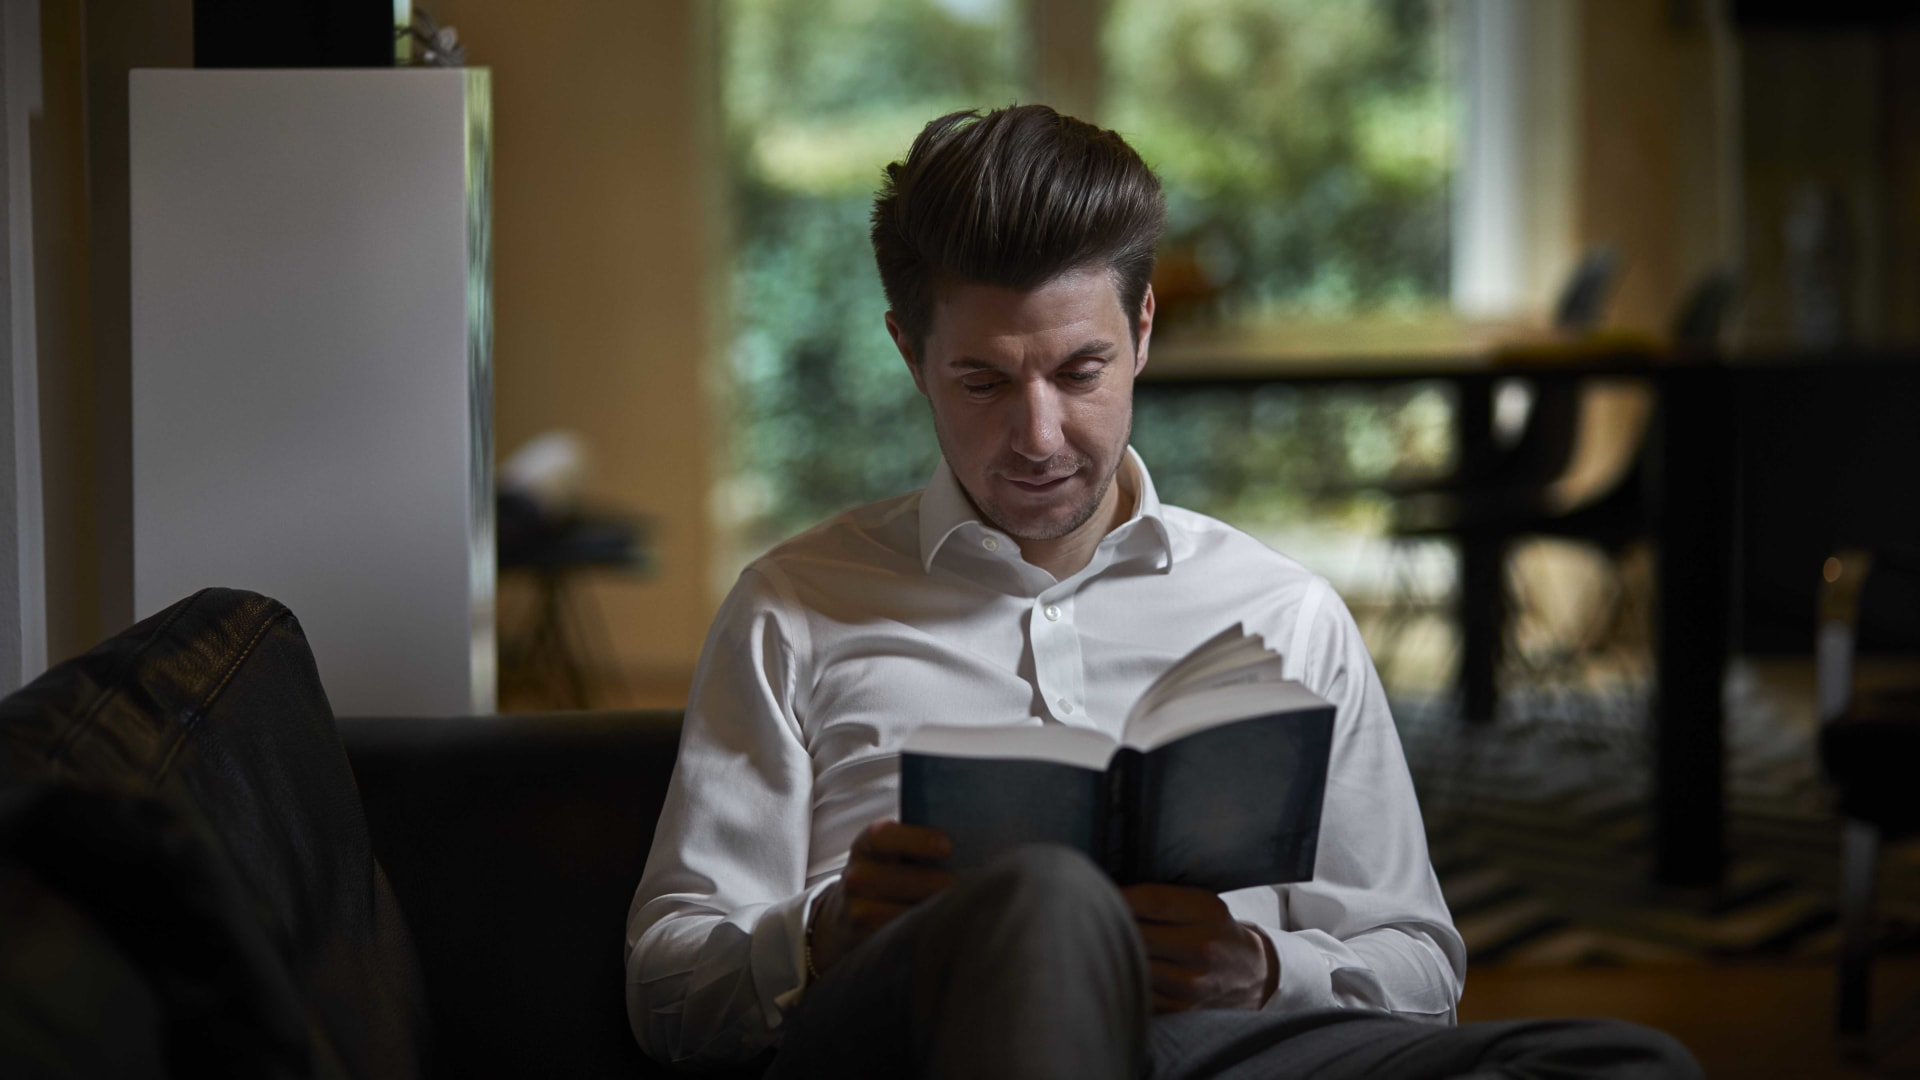 Why Investing a Few Minutes Each Day to Reading Poetry Improved My Leadership